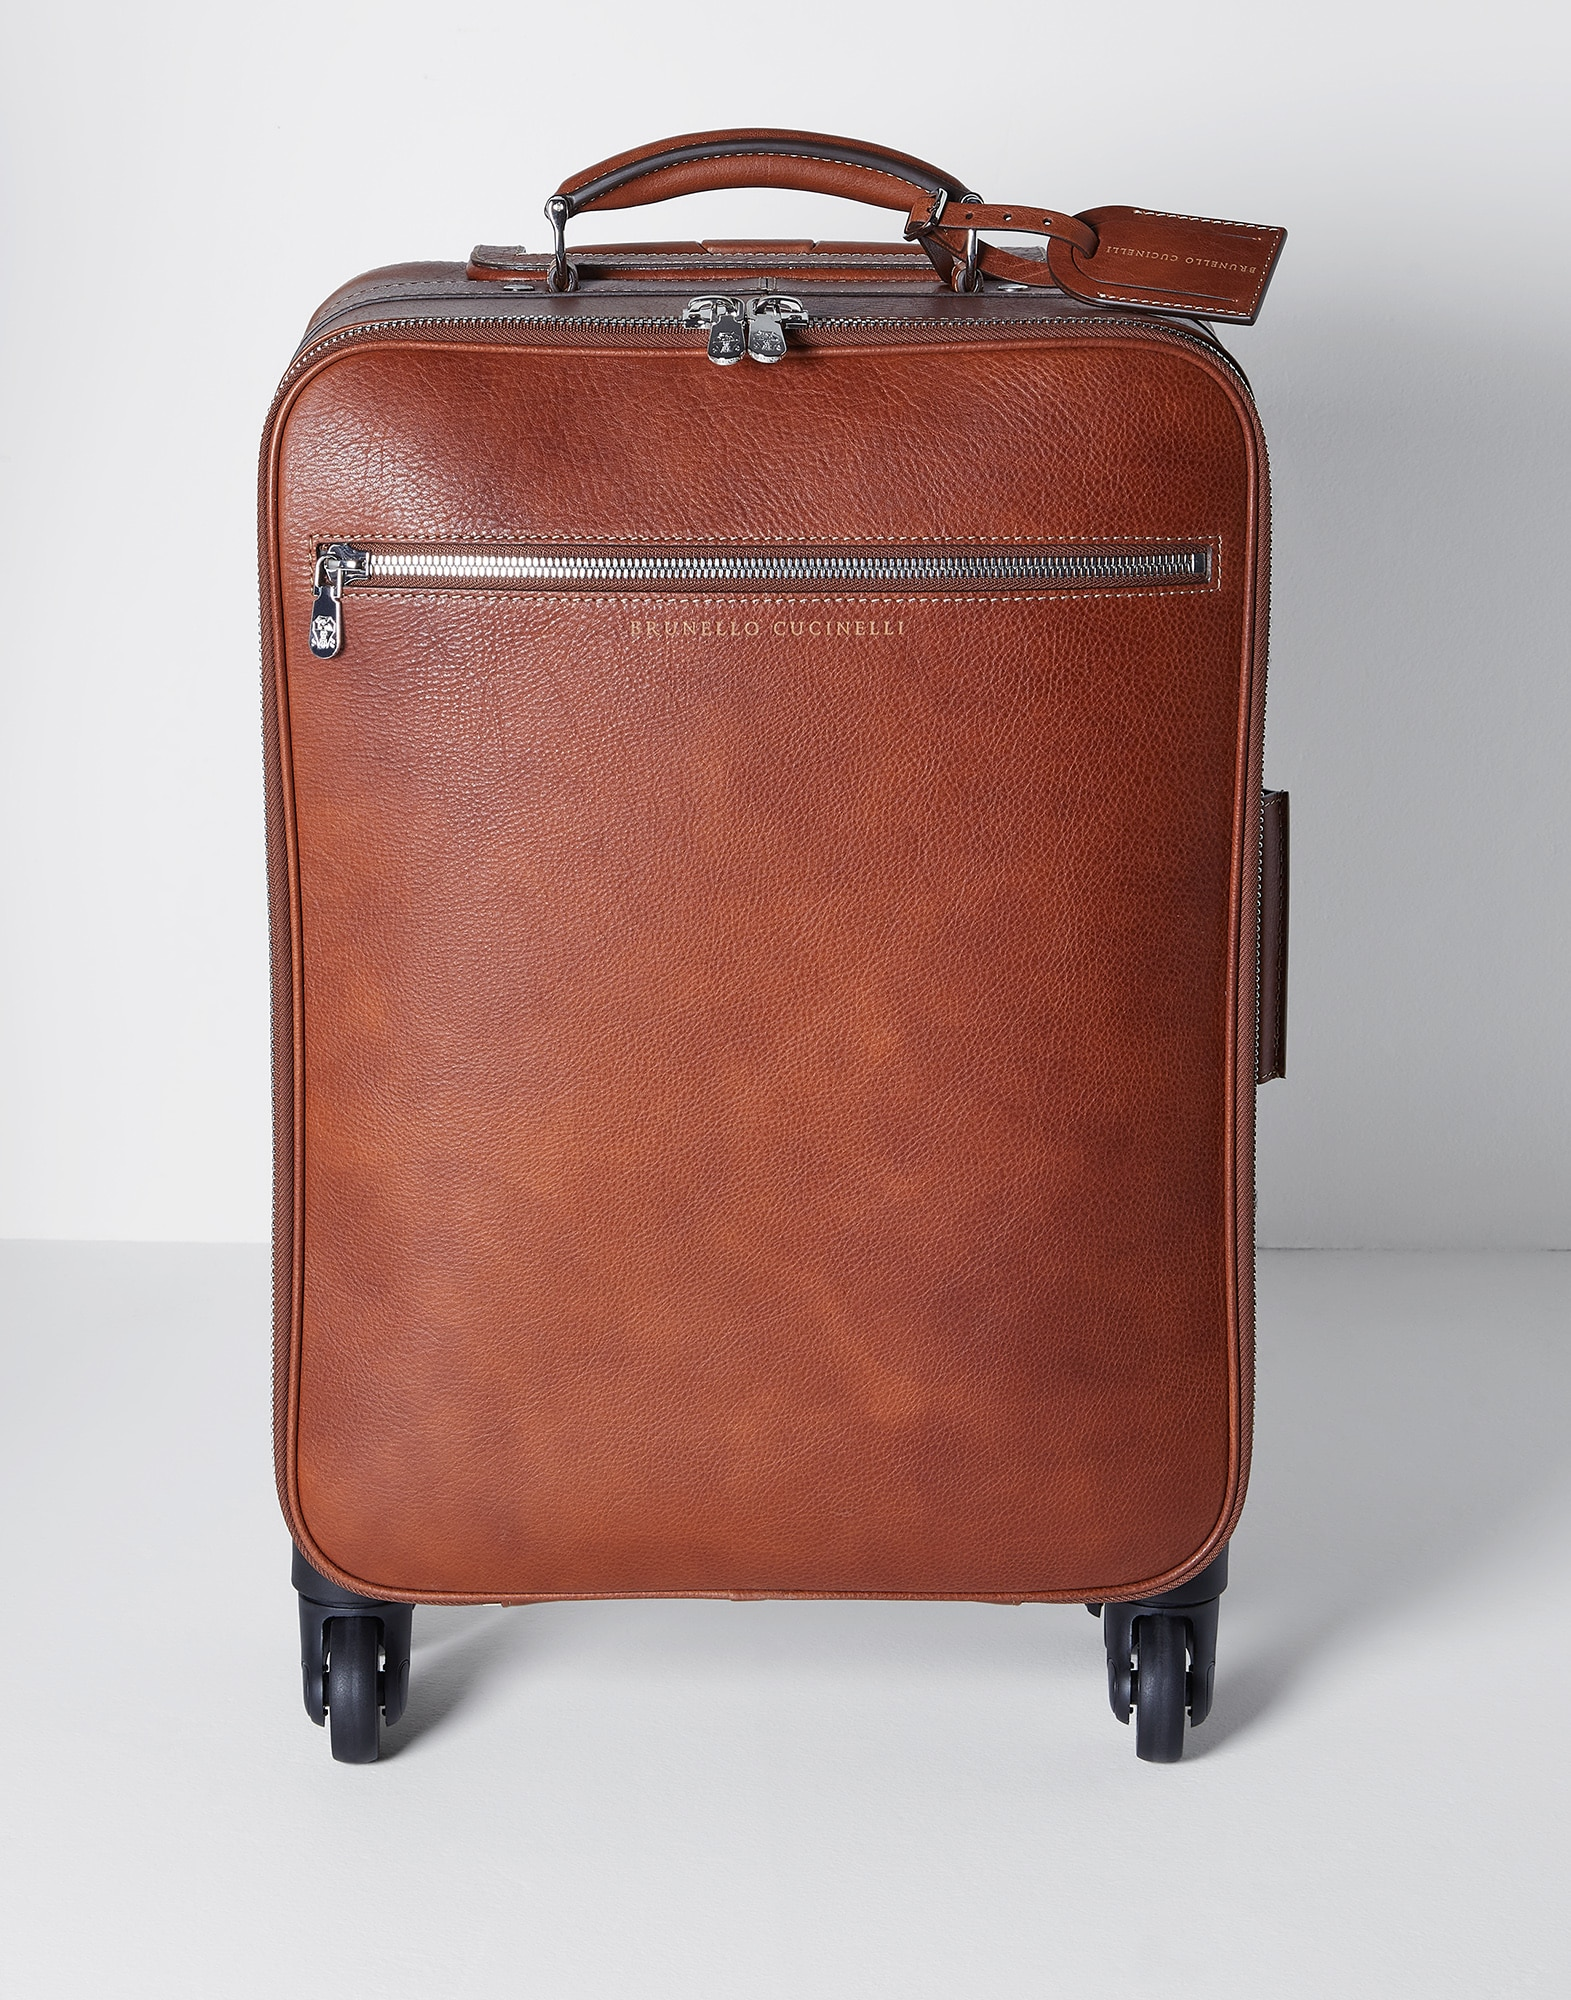 Wheeled Luggage Rum Man 1 - Brunello Cucinelli